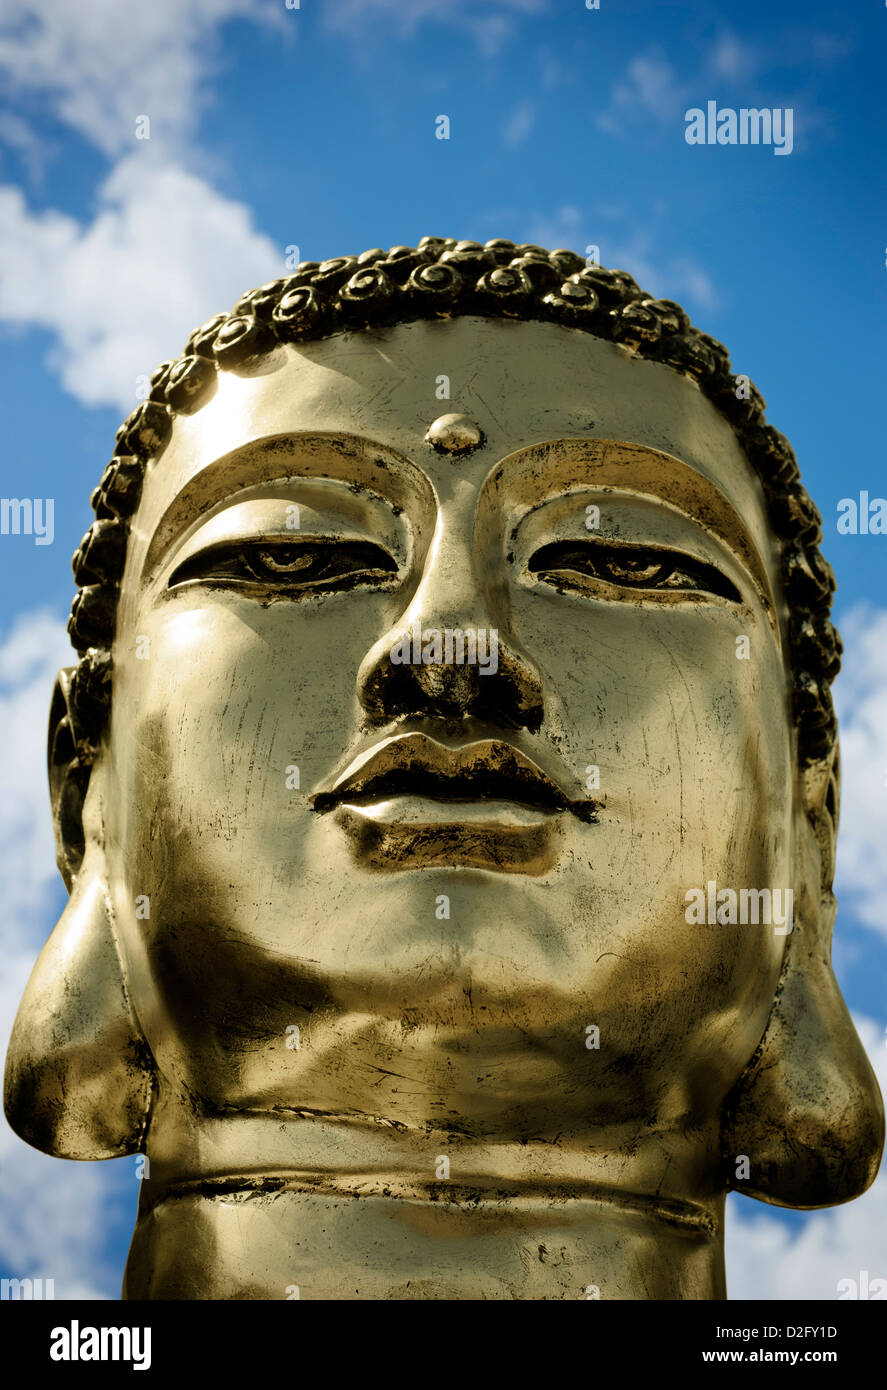 Close up detail of a gold Buddha Head against a cloudy blue sky - Stock Image